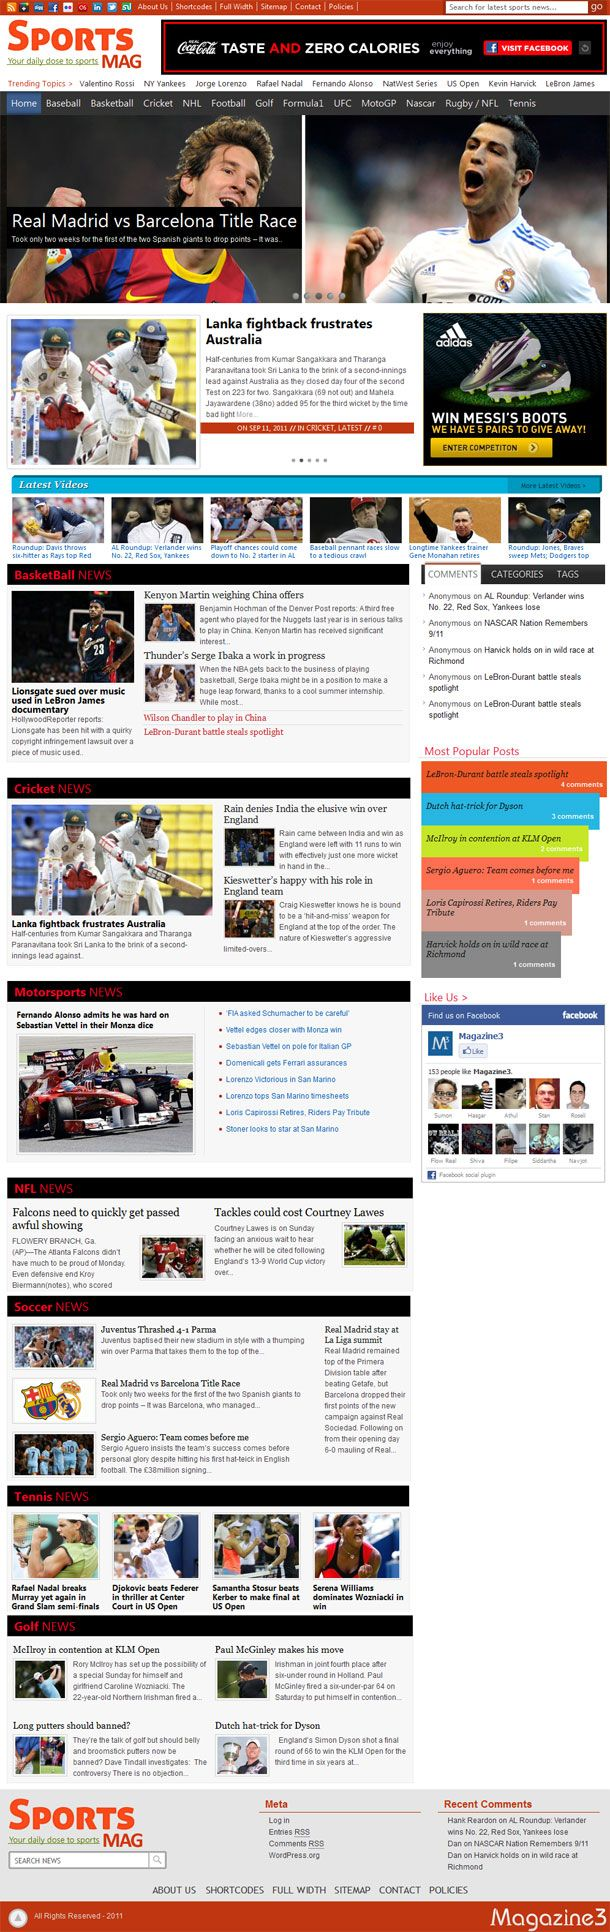 SportsMag WordPress Theme is a sports magazine style premium WordPress theme from Magazine3. The heavy content friendly theme is designed for sports news portal or it can be used in any other online magazine website. The content focusing theme includes features such as responsive design that adopts screen resolution of tablet, smartphone or desktop, custom widgets with 7 widgets area, built in lightbox effect for image, easy to use shortcodes, featured article slider on the homepage